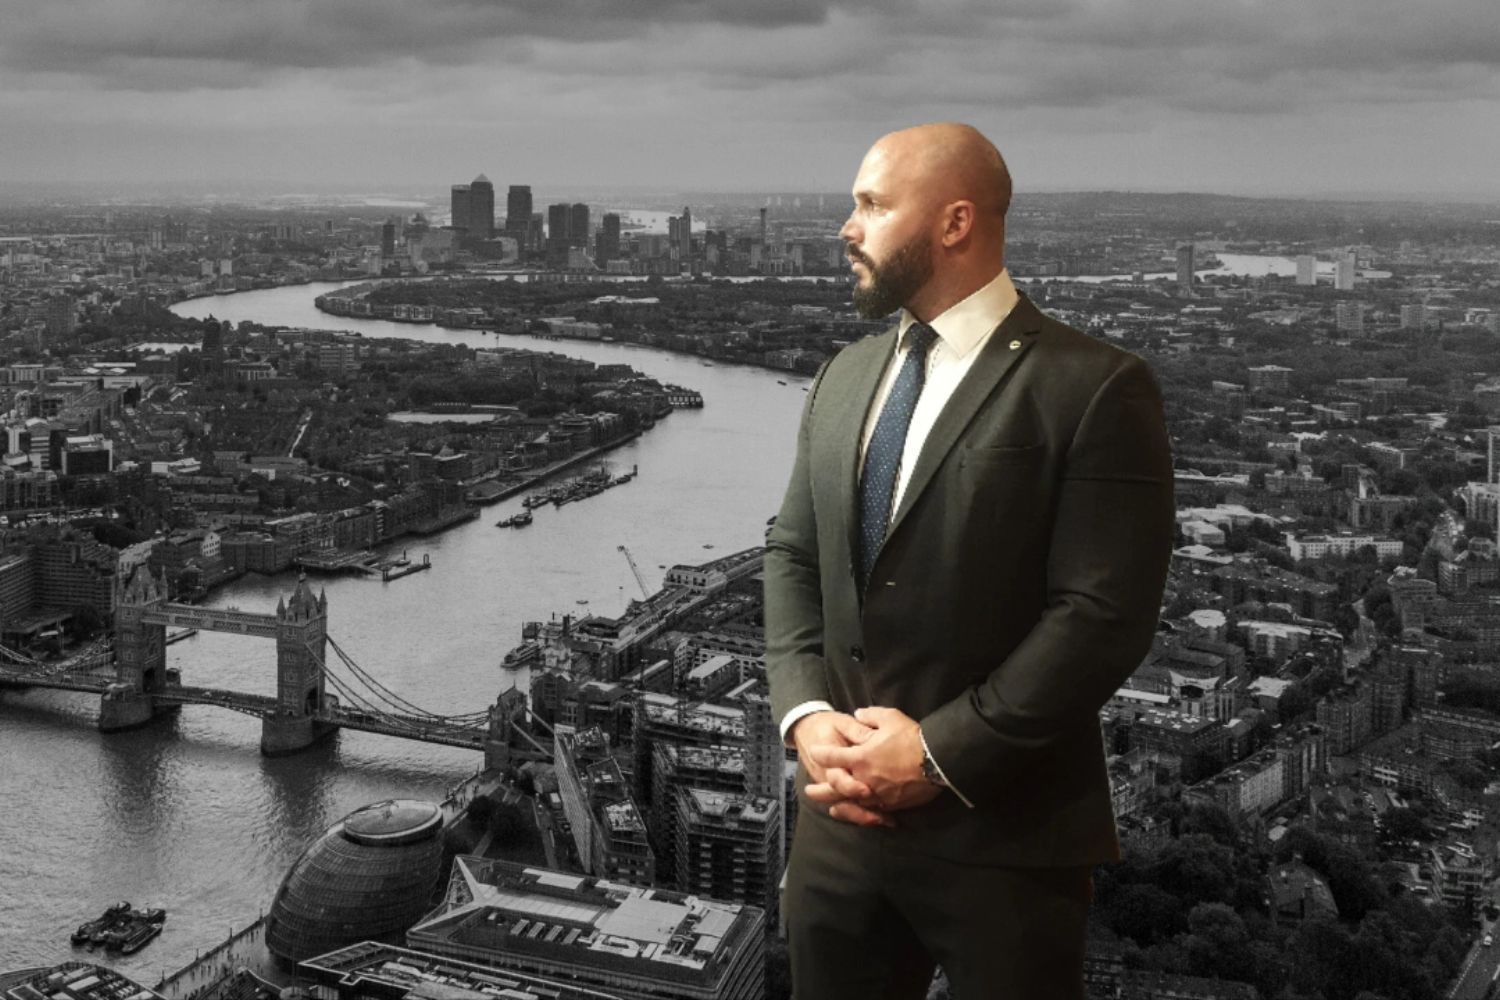 A male Close Protection Operative (Bodyguard) in a suit overlooking London city. UHWN protection.